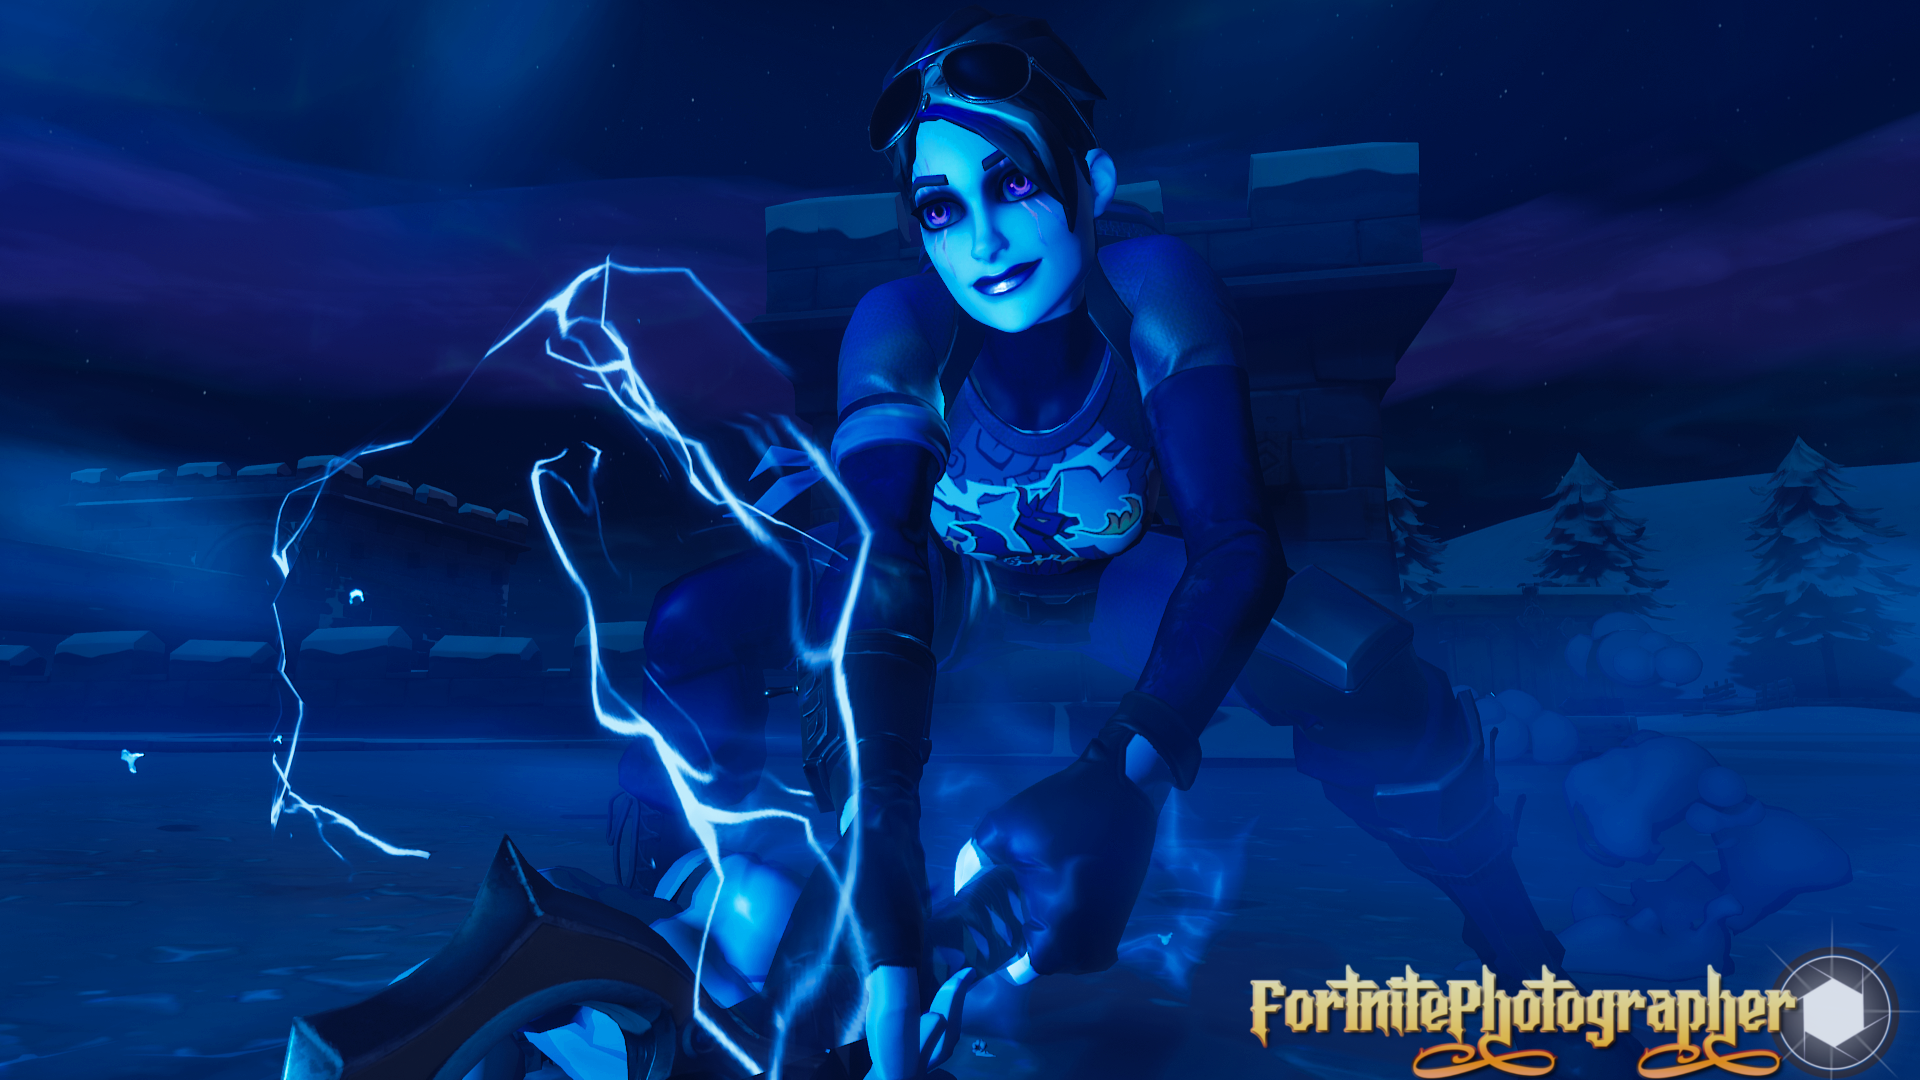 Such Power Who Miss The Mighty Sword I Don T Ewww Dark Bomber Set 02 1 4 Fnphootogr Background Images Wallpapers Epic Games Background Images